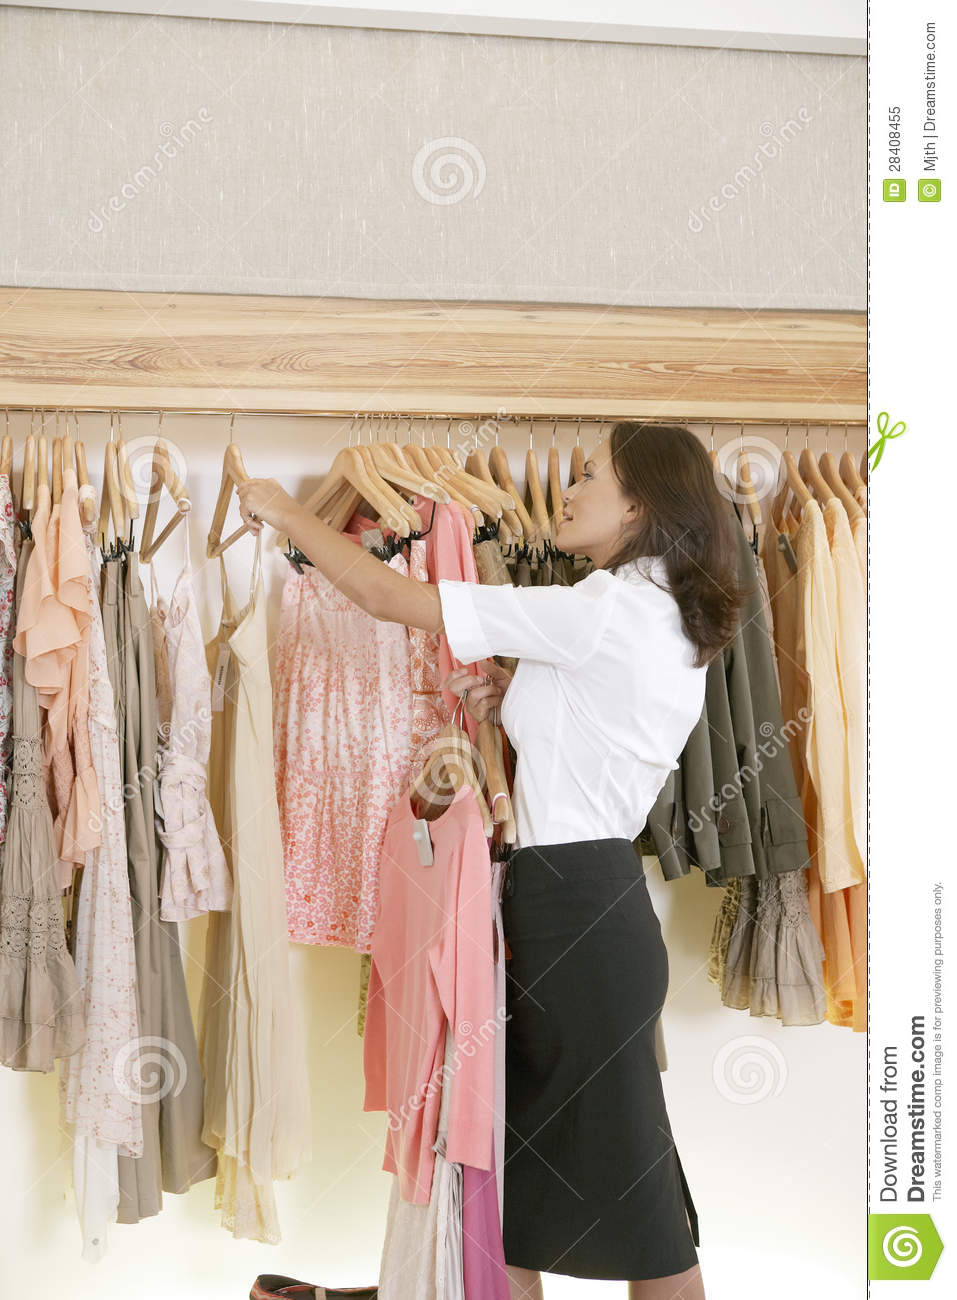 Best stores for work clothes. Cheap online clothing stores